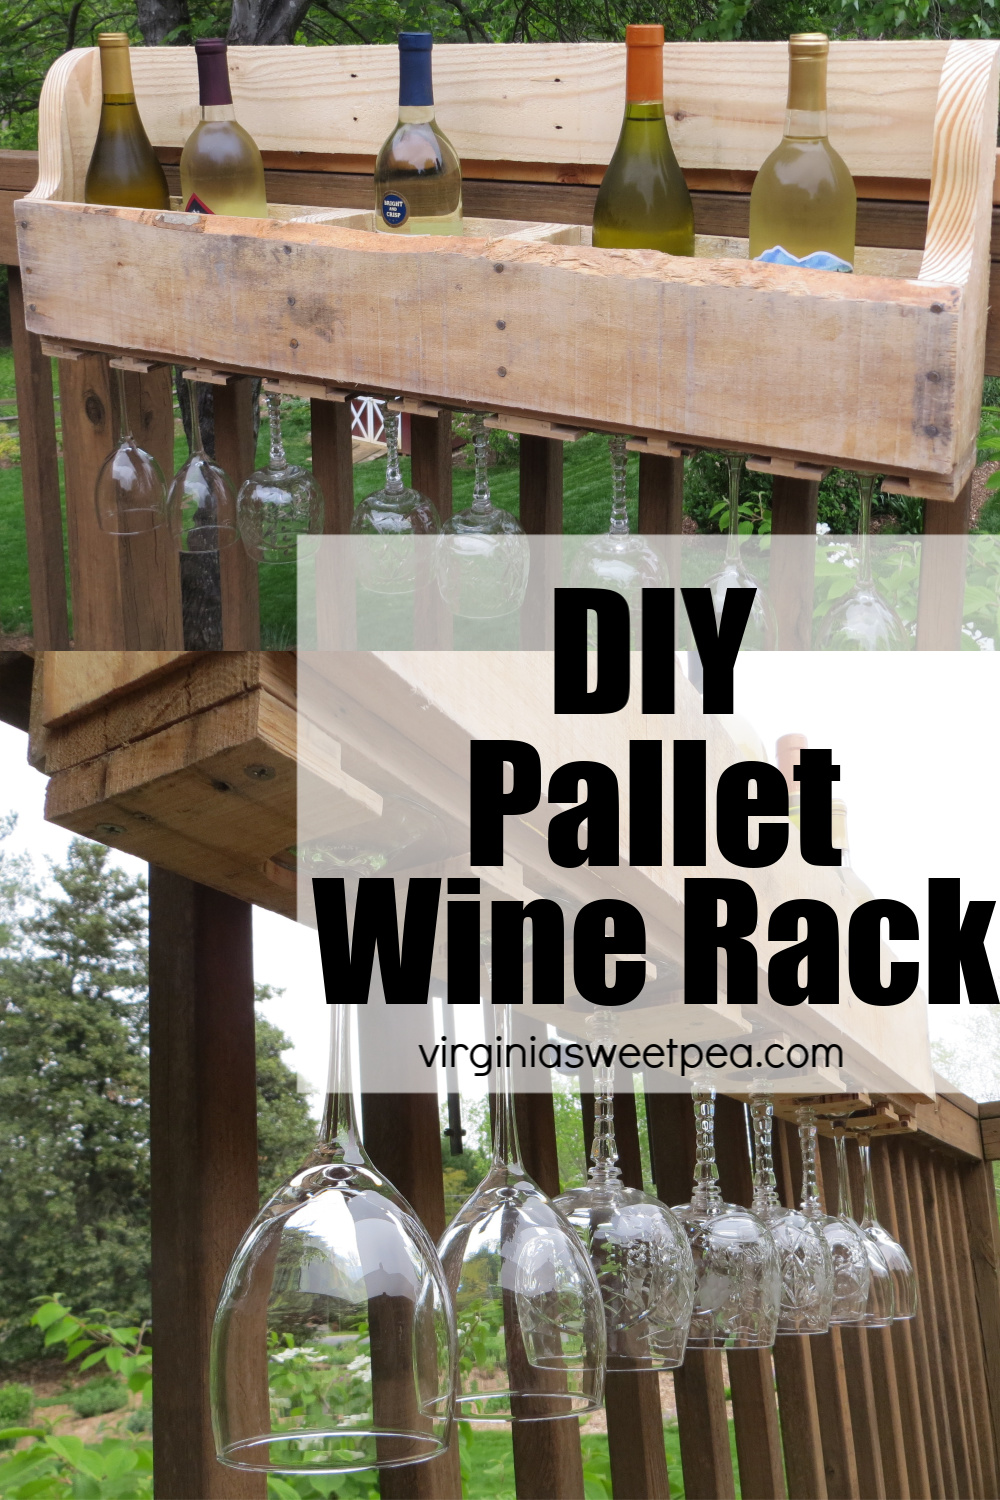 DIY Pallet Wine Rack - Learn how to make a wine rack using a pallet. The wine rack holds bottles on the top and has slots for displaying glasses on the bottom. #diywinerack #winerack via @spaula